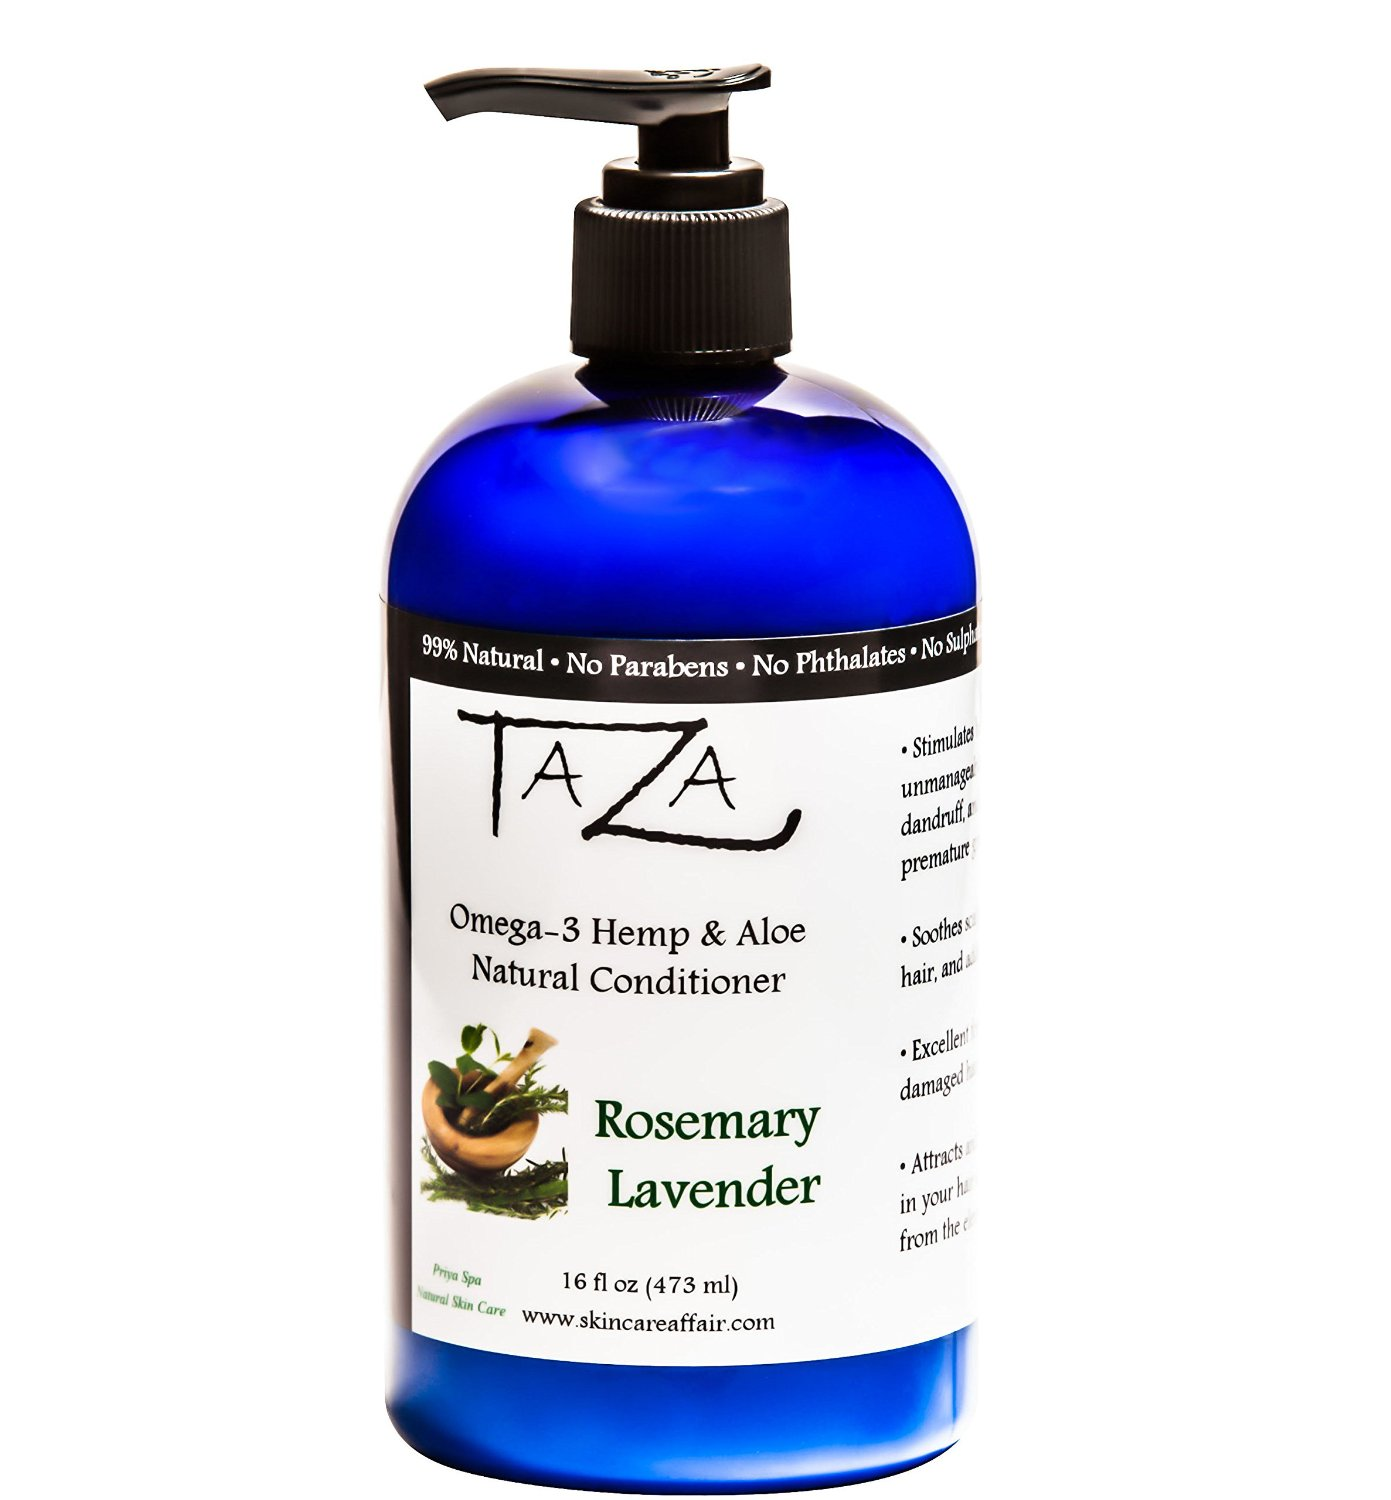 Premium Taza Natural Omega-3 Hemp & Aloe Rosemary Lavender Conditioner, 16 fl oz ♦ For Healthy Hair ♦ Contains: Hemp Seed Oil, Coconut Oil, Aloe Leaf Juice, Pro V B5, Hydrolyzed Wheat Protein